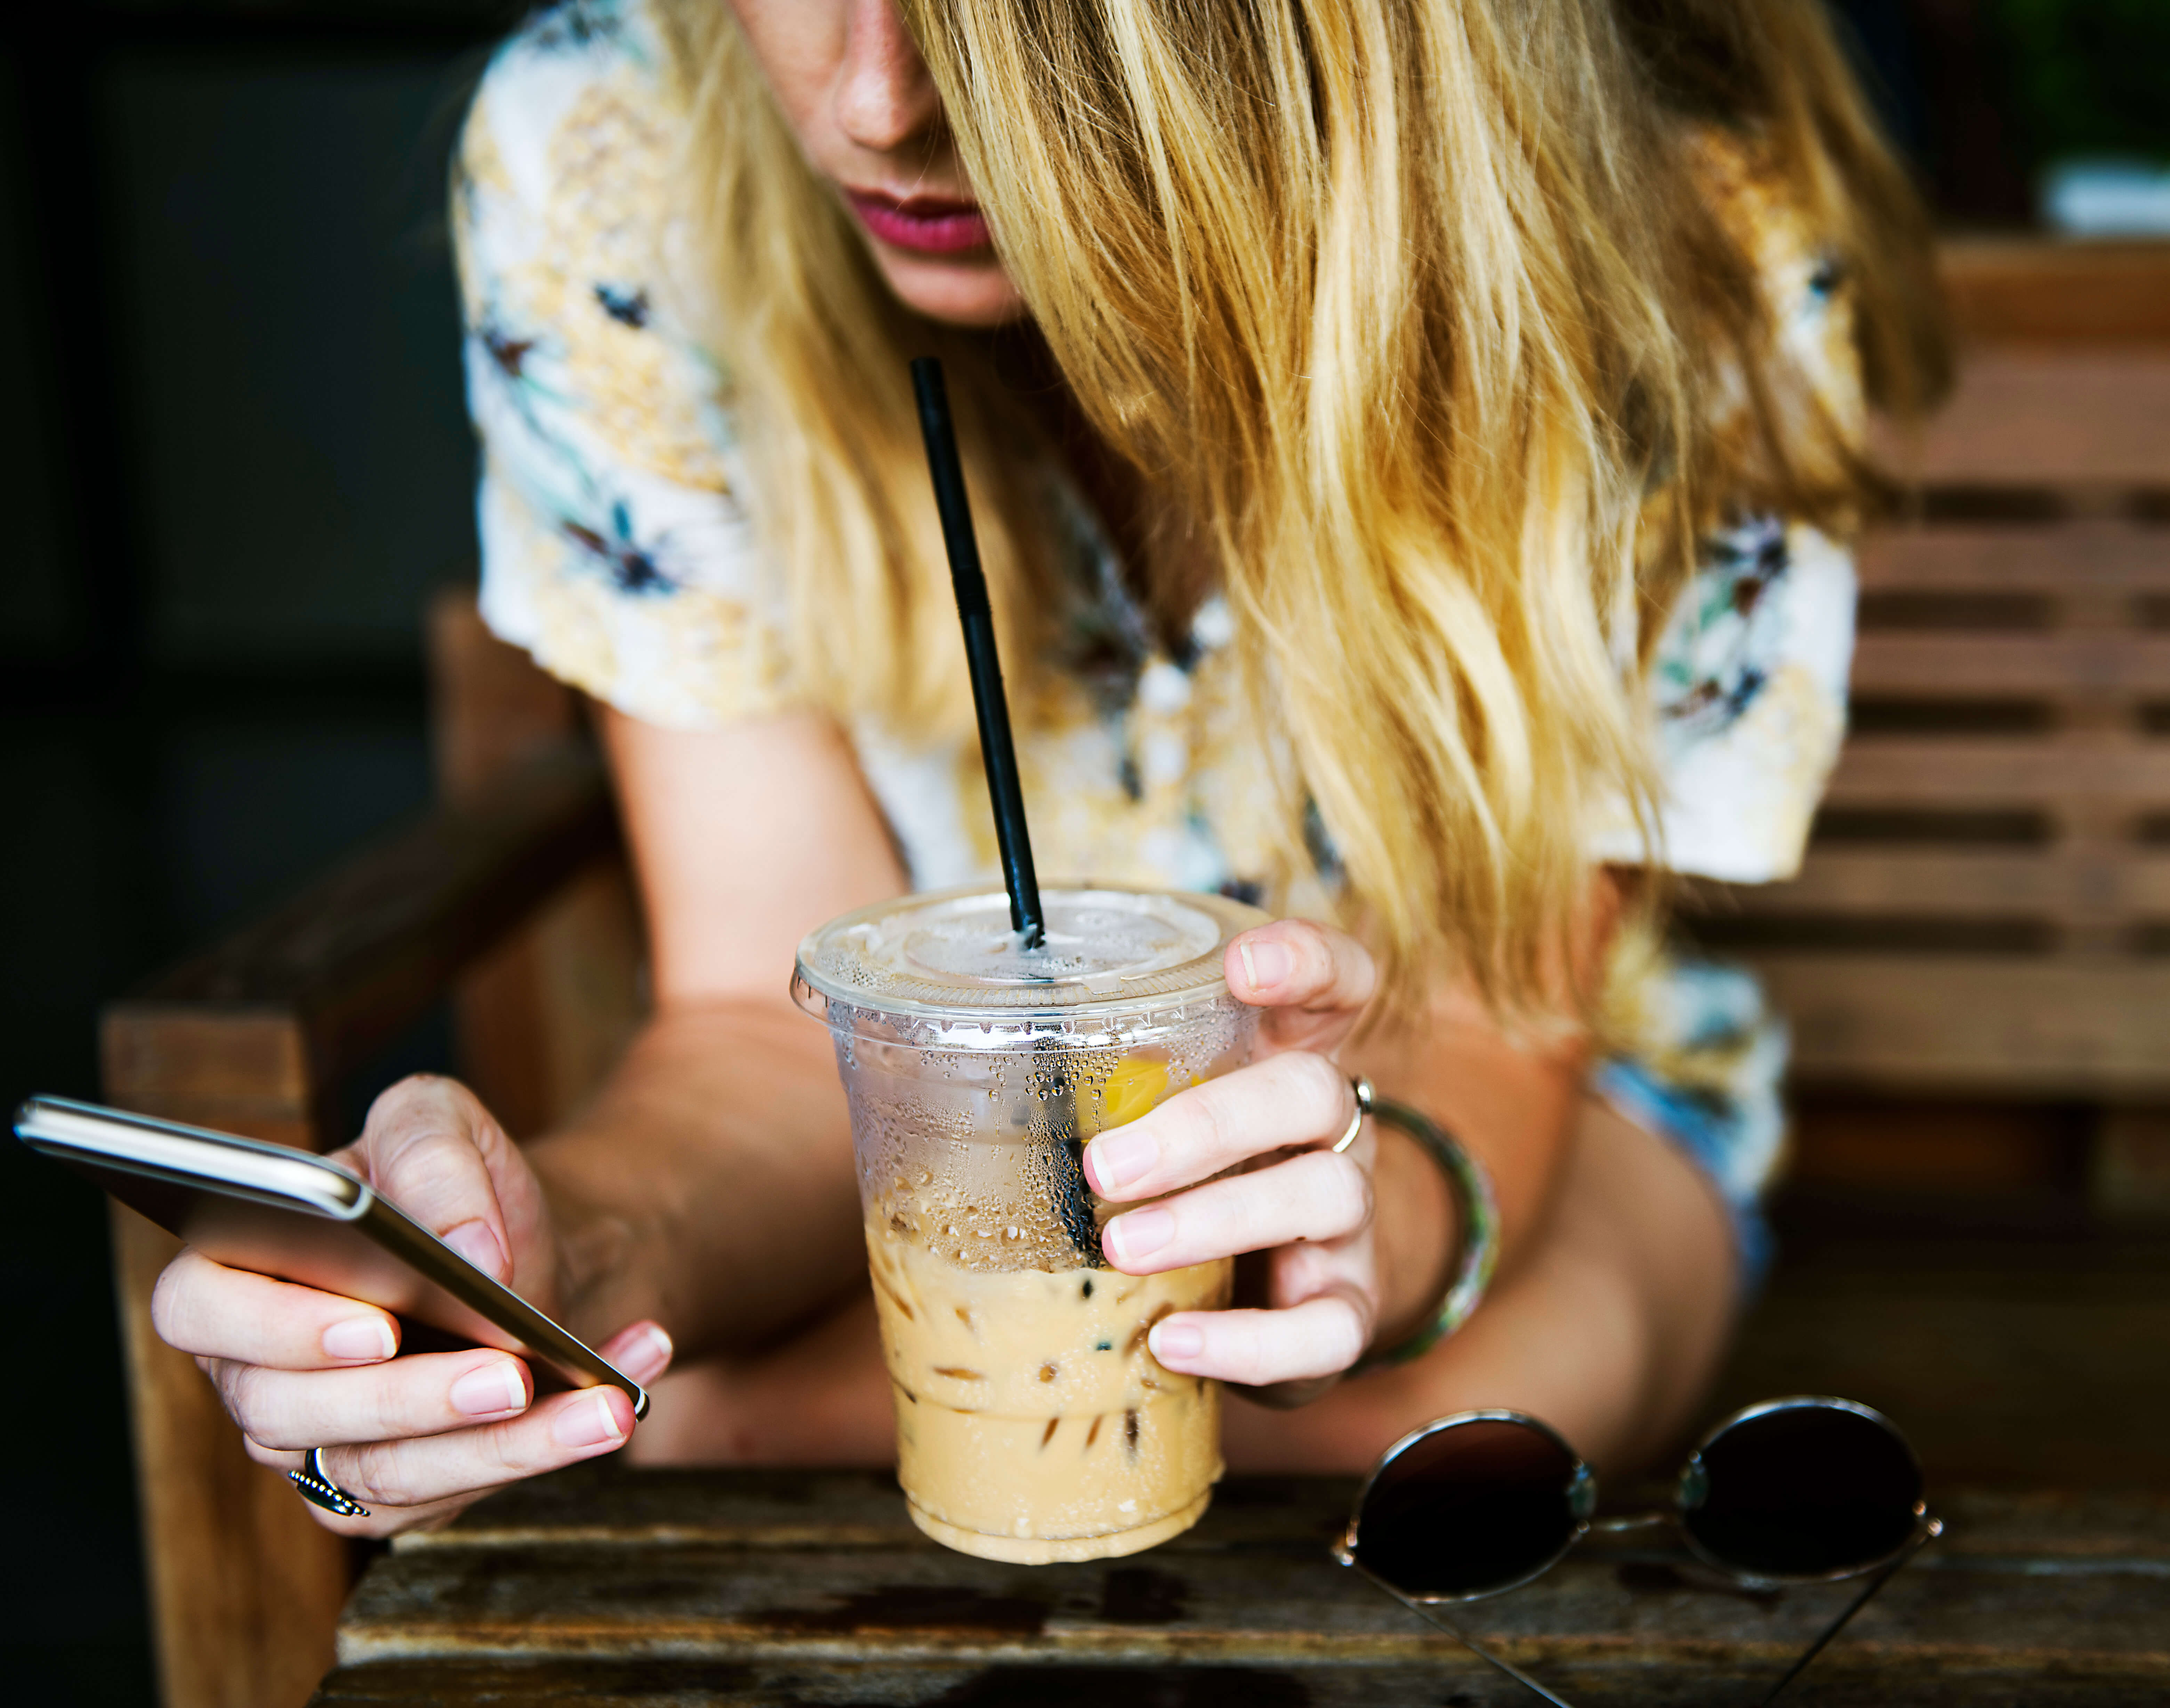 woman-holding-iced-coffee-and-phone